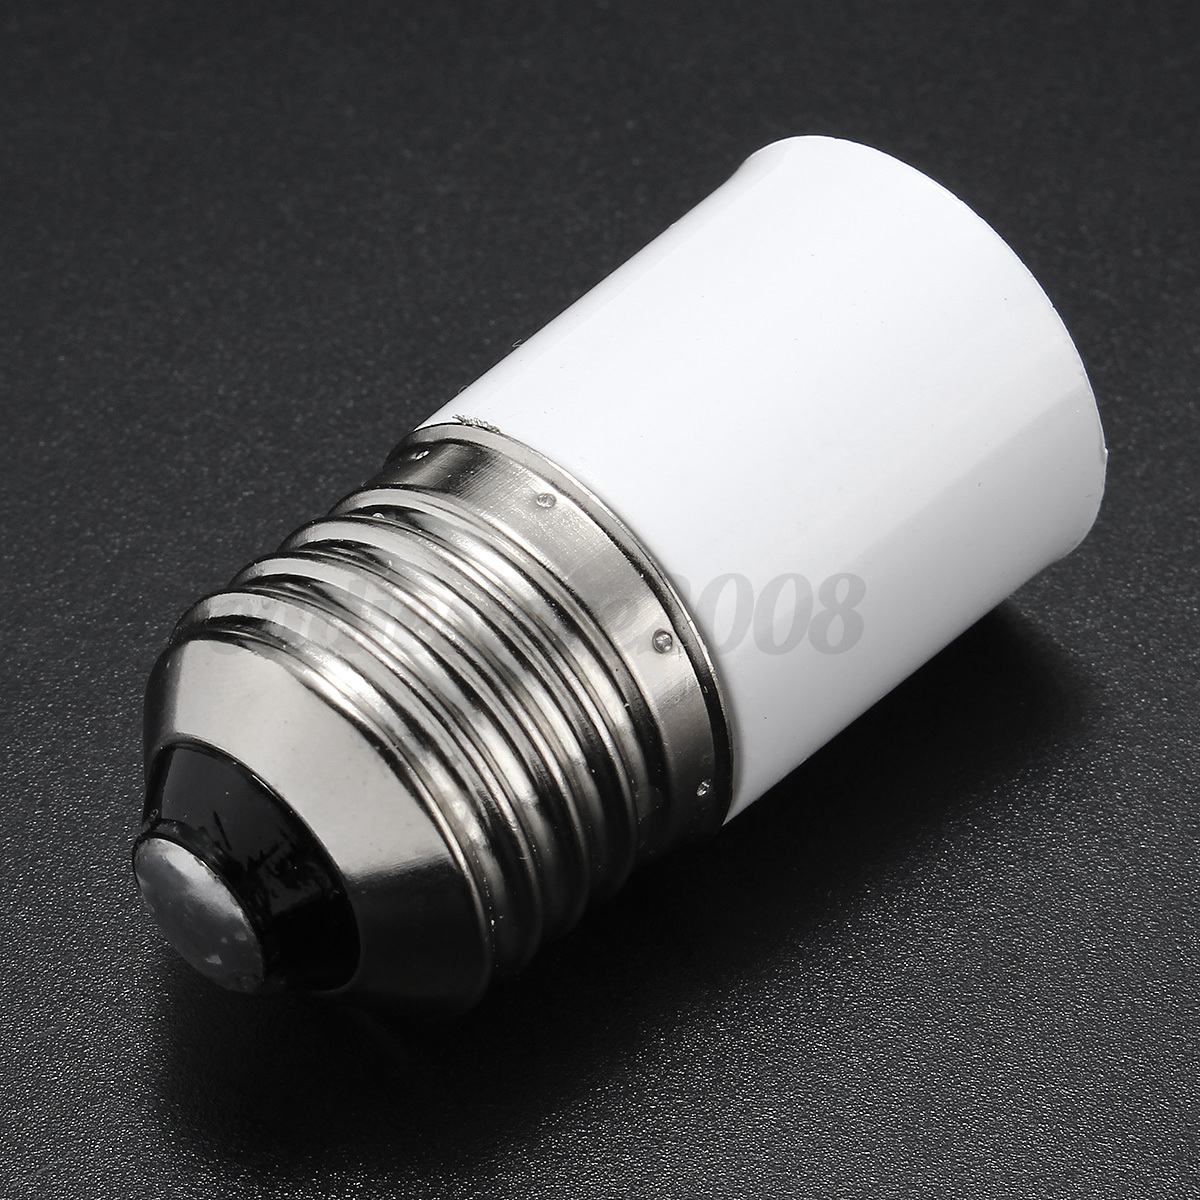 E27 E14 B22 B15d Lamp Bulb Adapter Socket Holder Convert To Us Eu Power Female Outlet B22 E27 Screw Lamp Holder Convert To Us Power Female